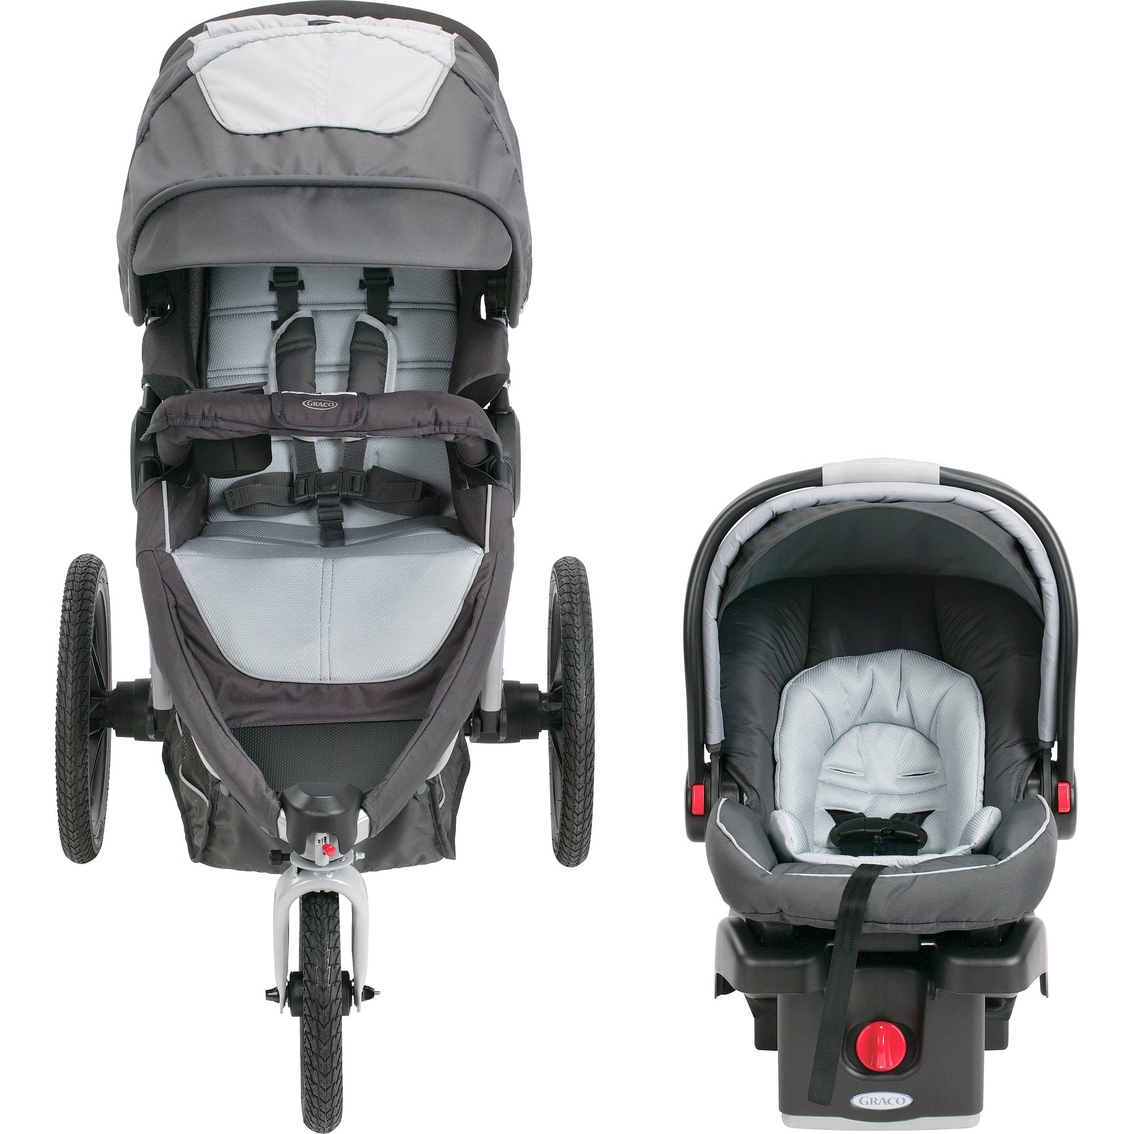 Graco Relay Performance Jogger Click Connect Travel System